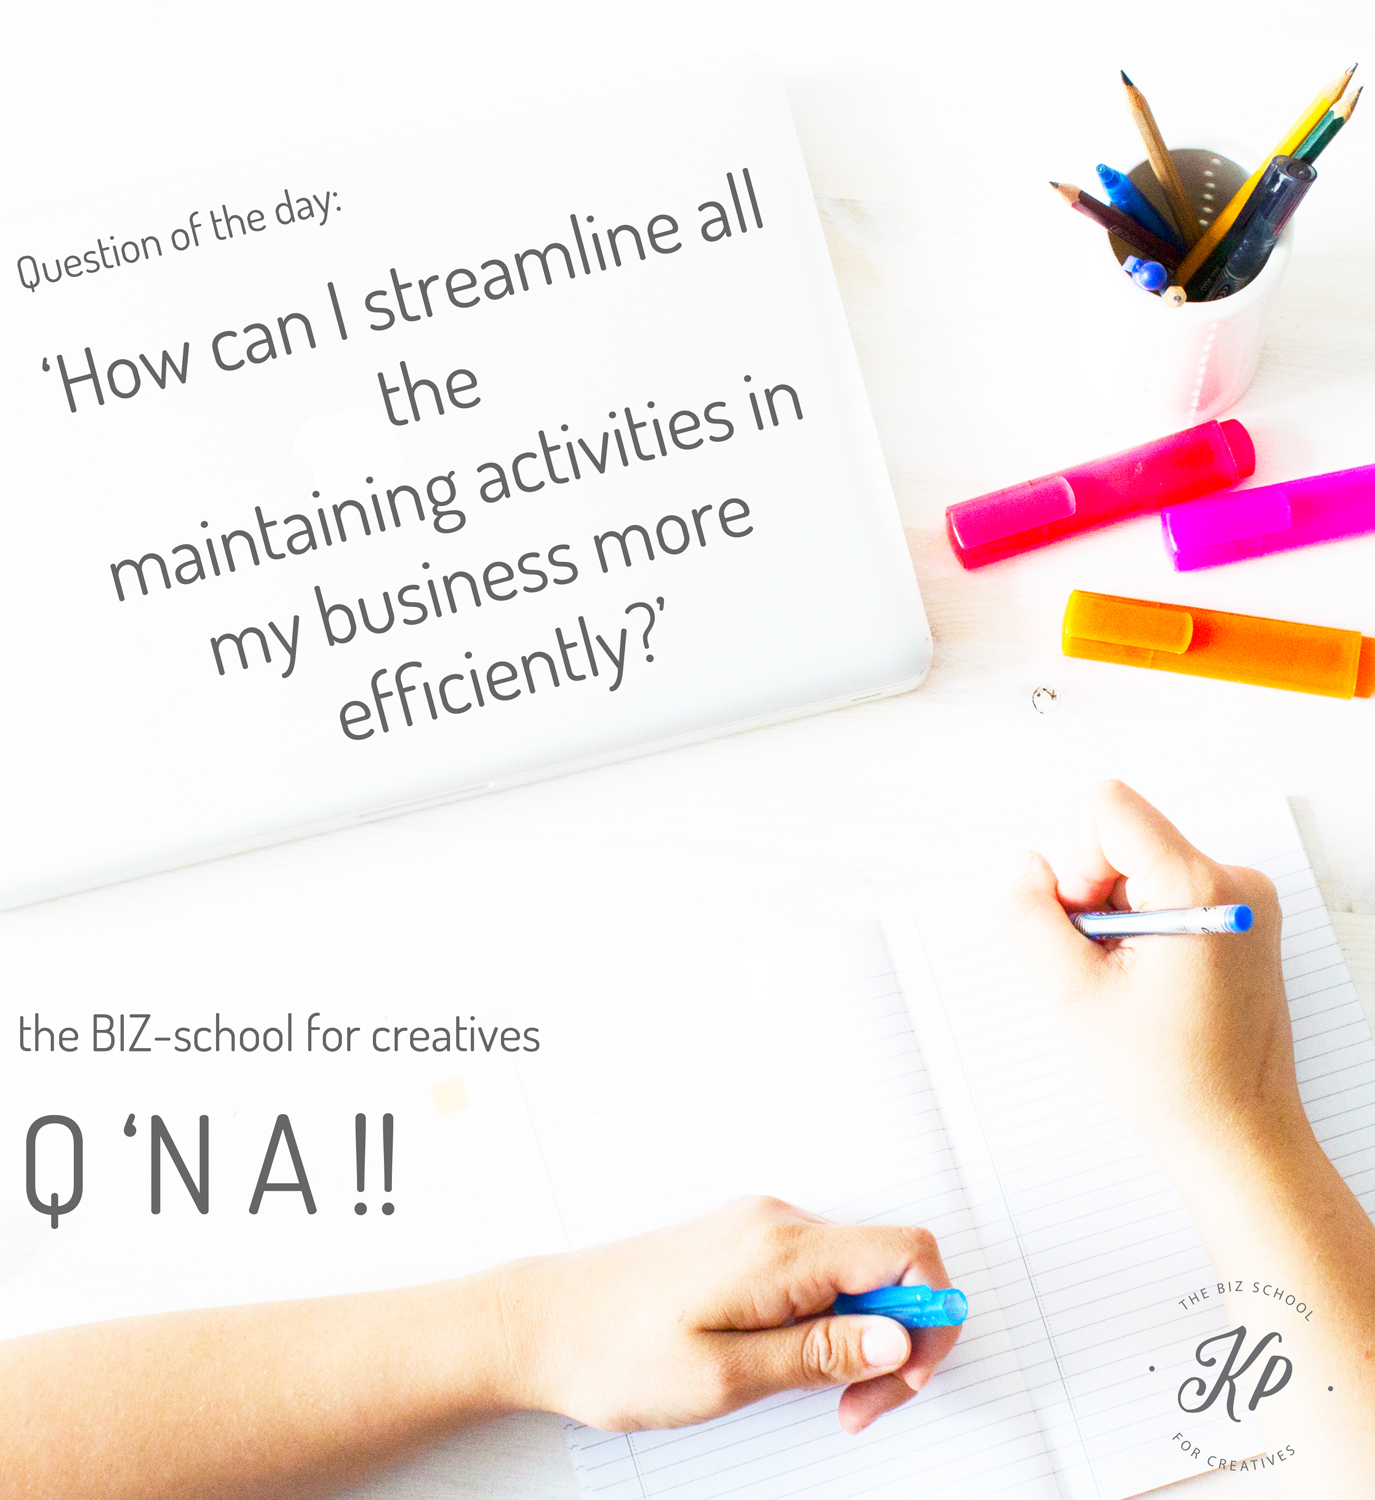 the BIZ-school for creatives Q 'N A, Question of the day: 'How can I streamline all the maintaining activities in my business more efficiently?' Read the full answer at www.kerstinpressler.com